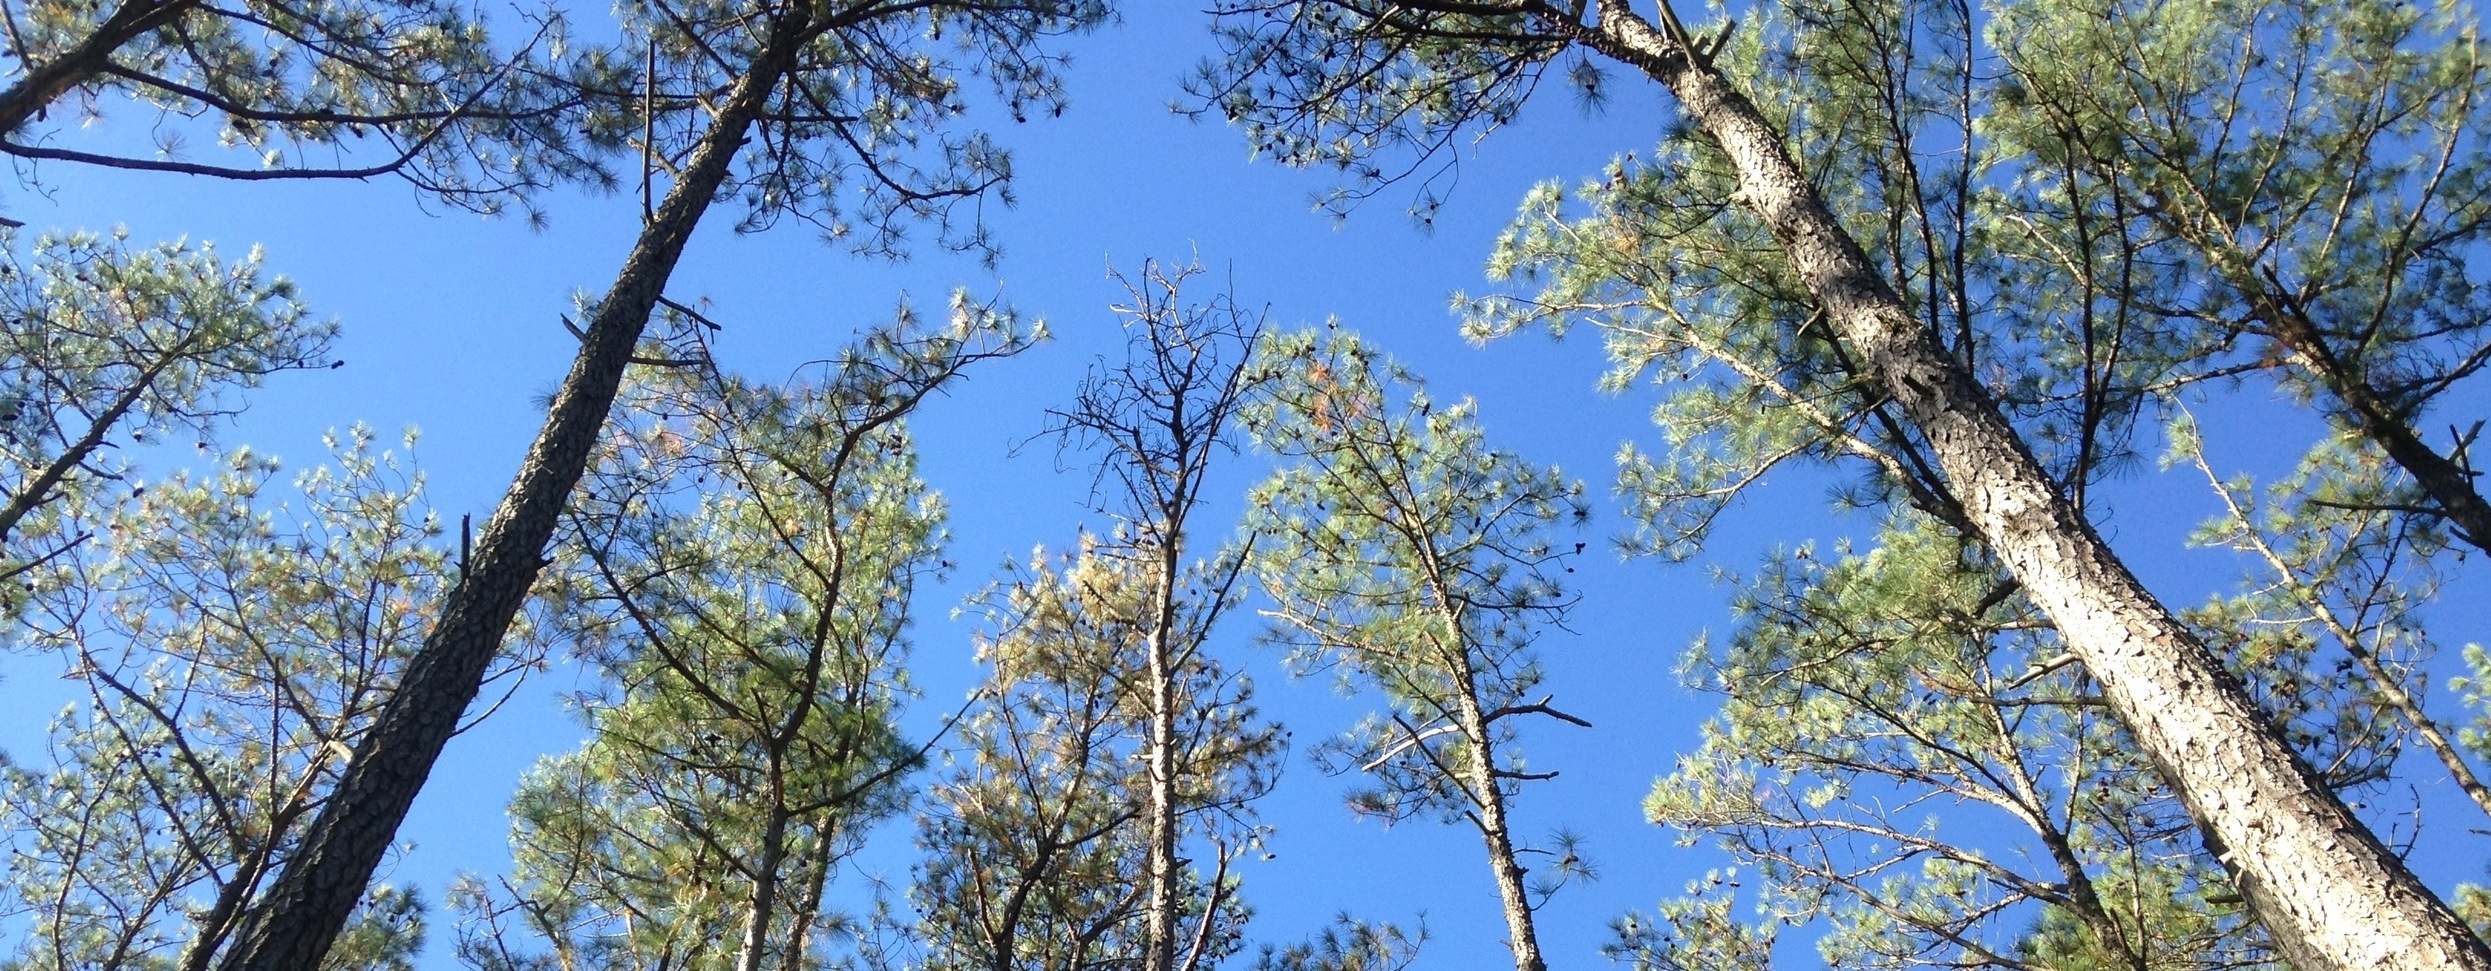 Loblolly pine forest in the Chesapeake Bay's lower eastern shore.